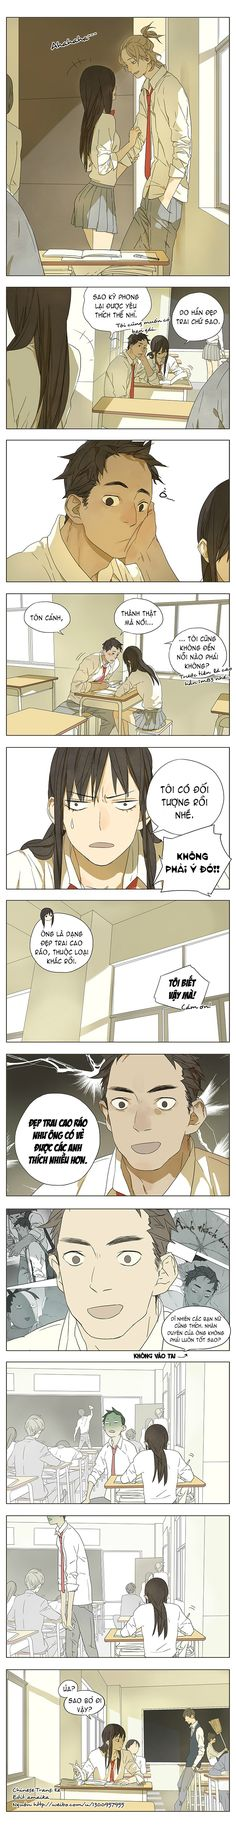 Tamen De Gushi 50 - Read Tamen De Gushi 50 Manga Scans Page 1 Free and No Registration required for Tamen De Gushi 50 Manga Art, Manga Anime, Anime Art, Comic Manga, Manga Comics, Cute Comics, Funny Comics, Manhwa, Tan Jiu